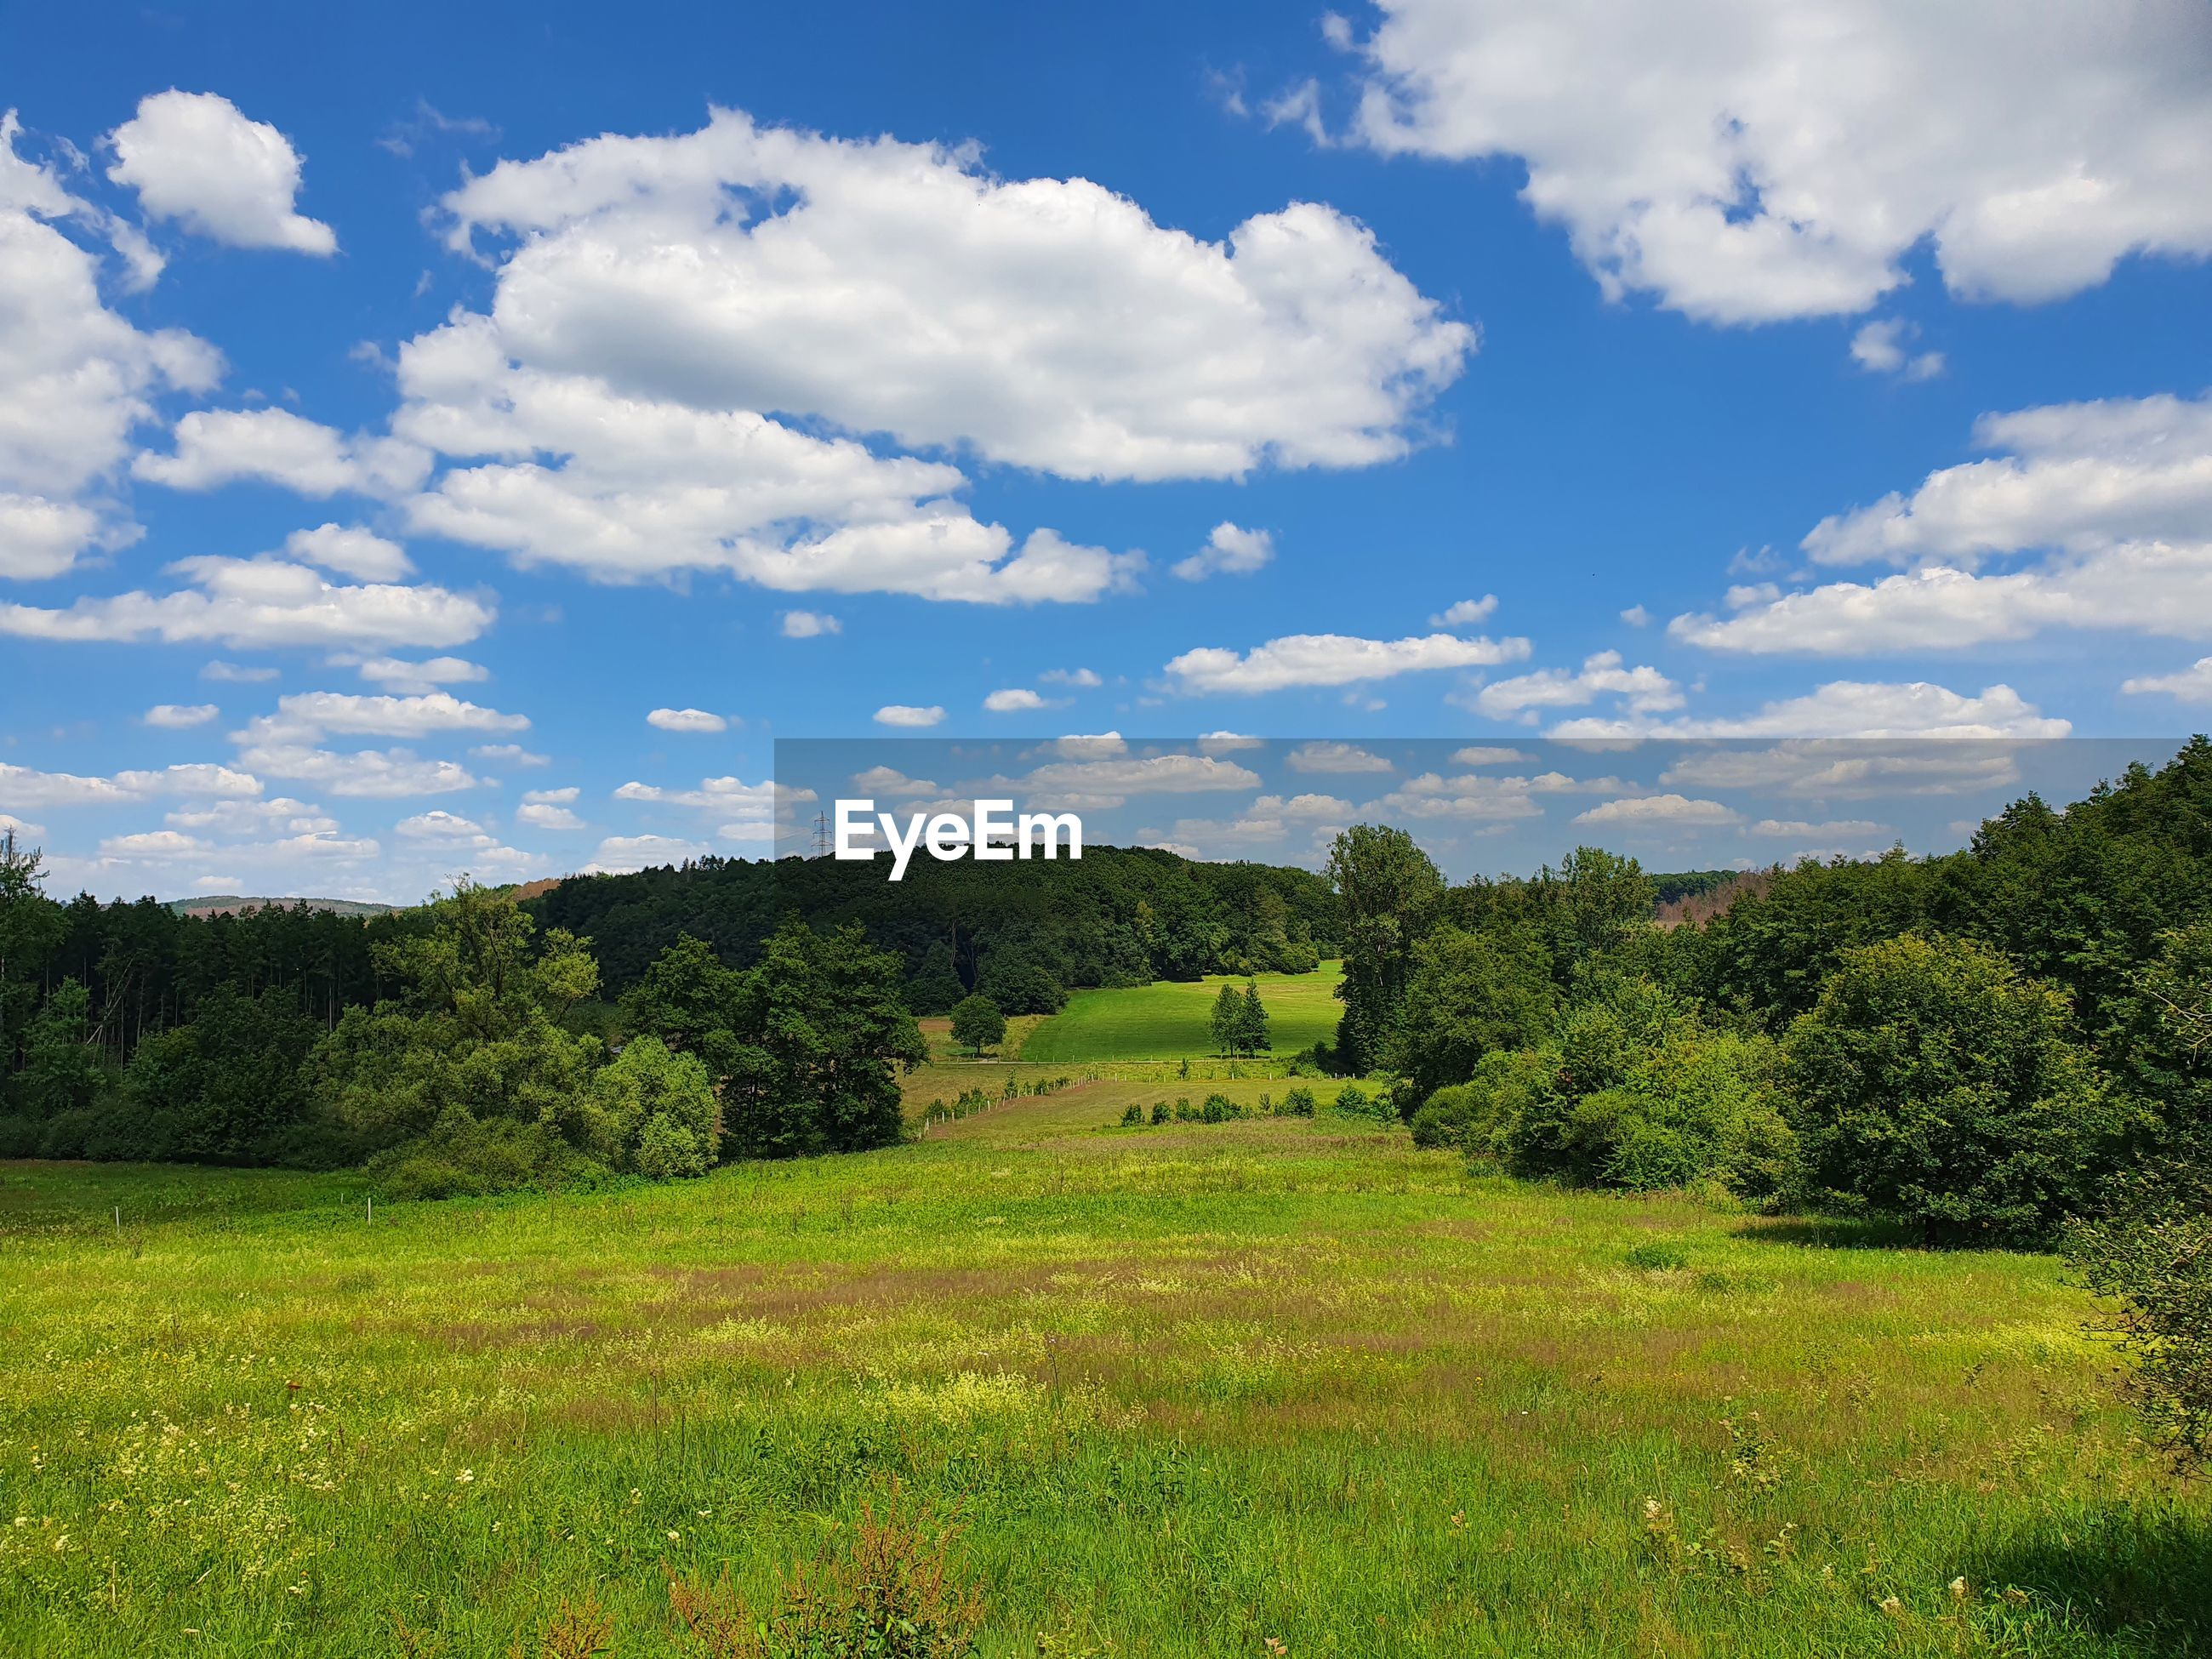 SCENIC VIEW OF TREES ON FIELD AGAINST SKY